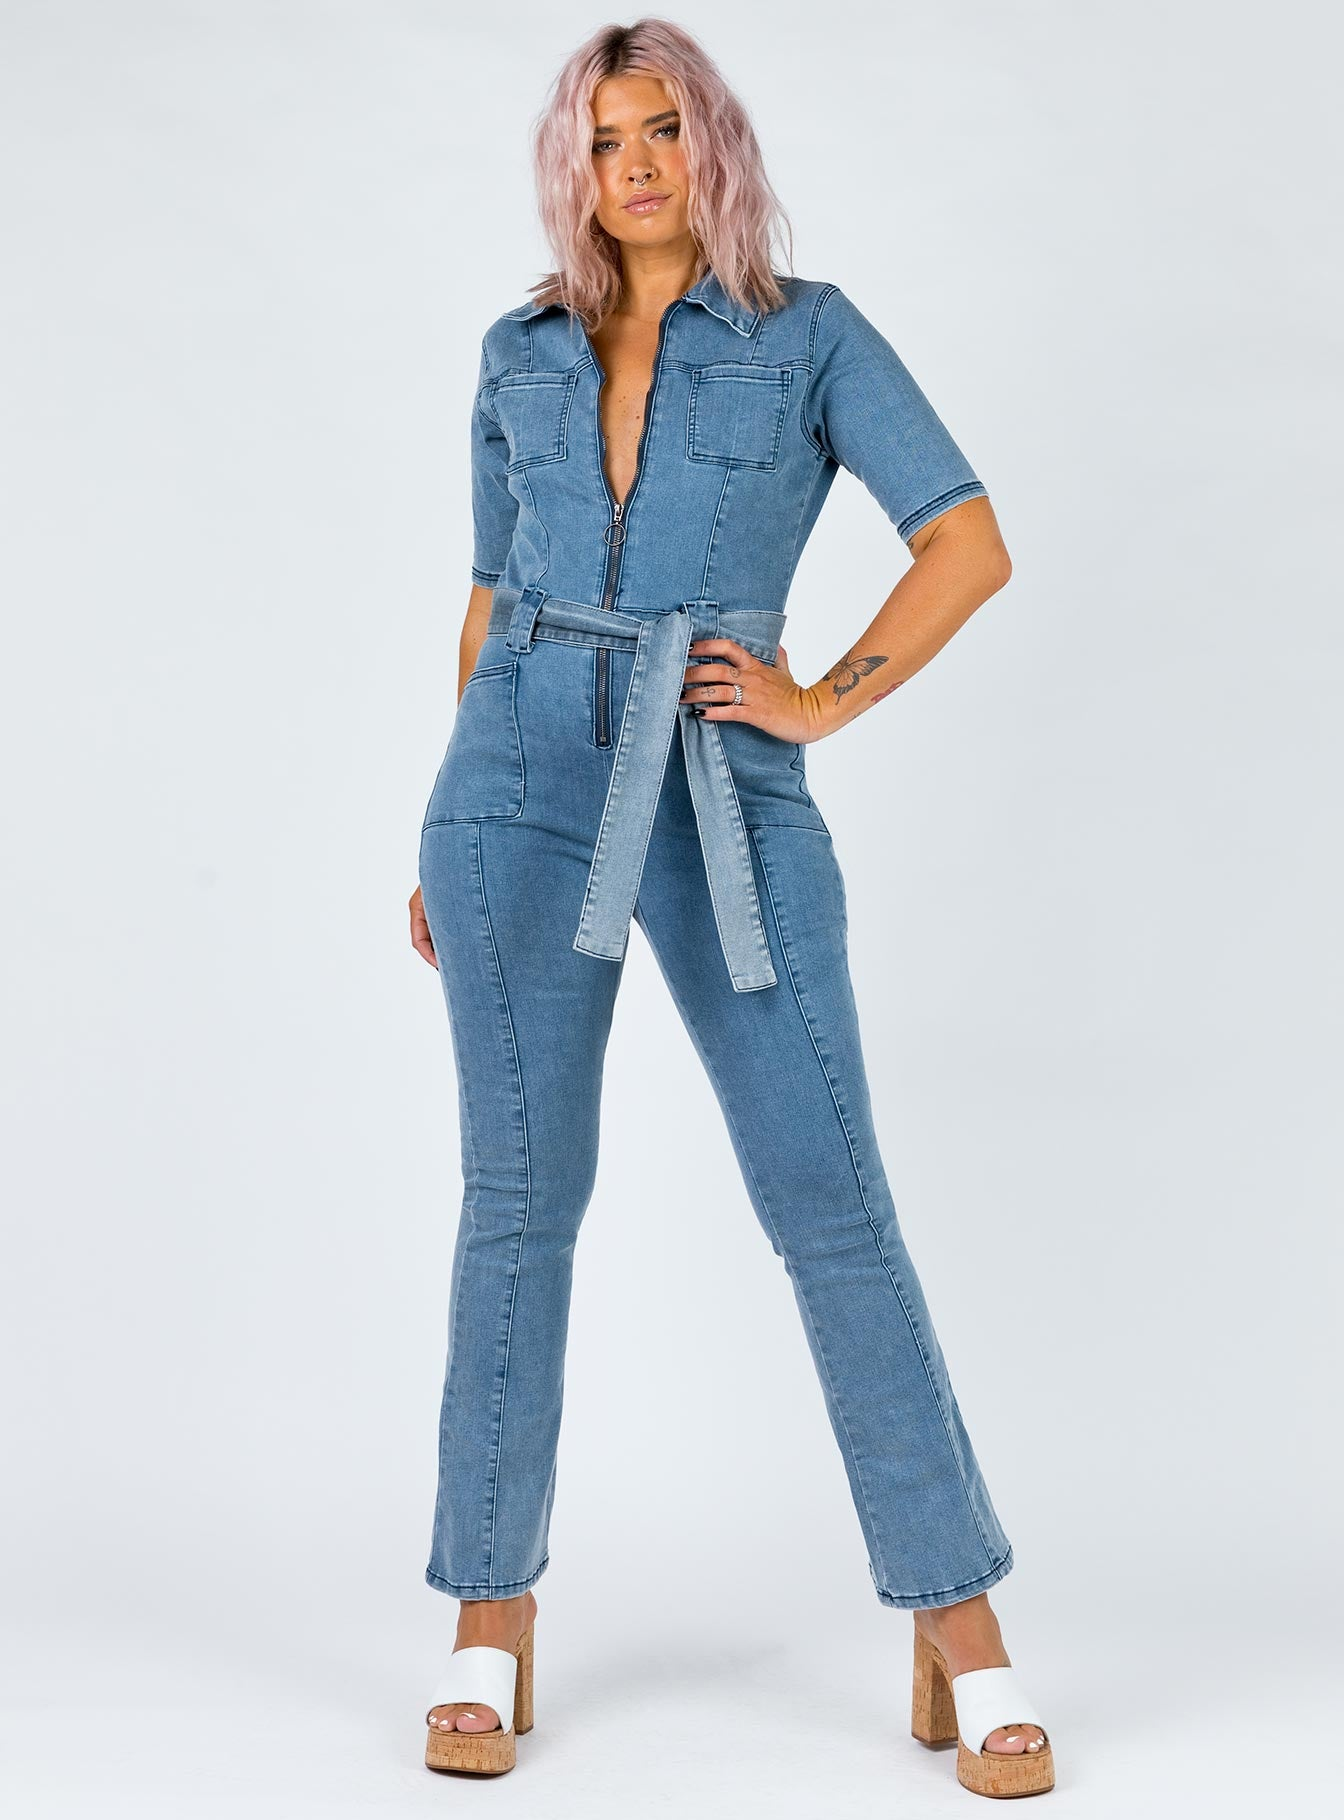 Fawcett Denim Jumpsuit